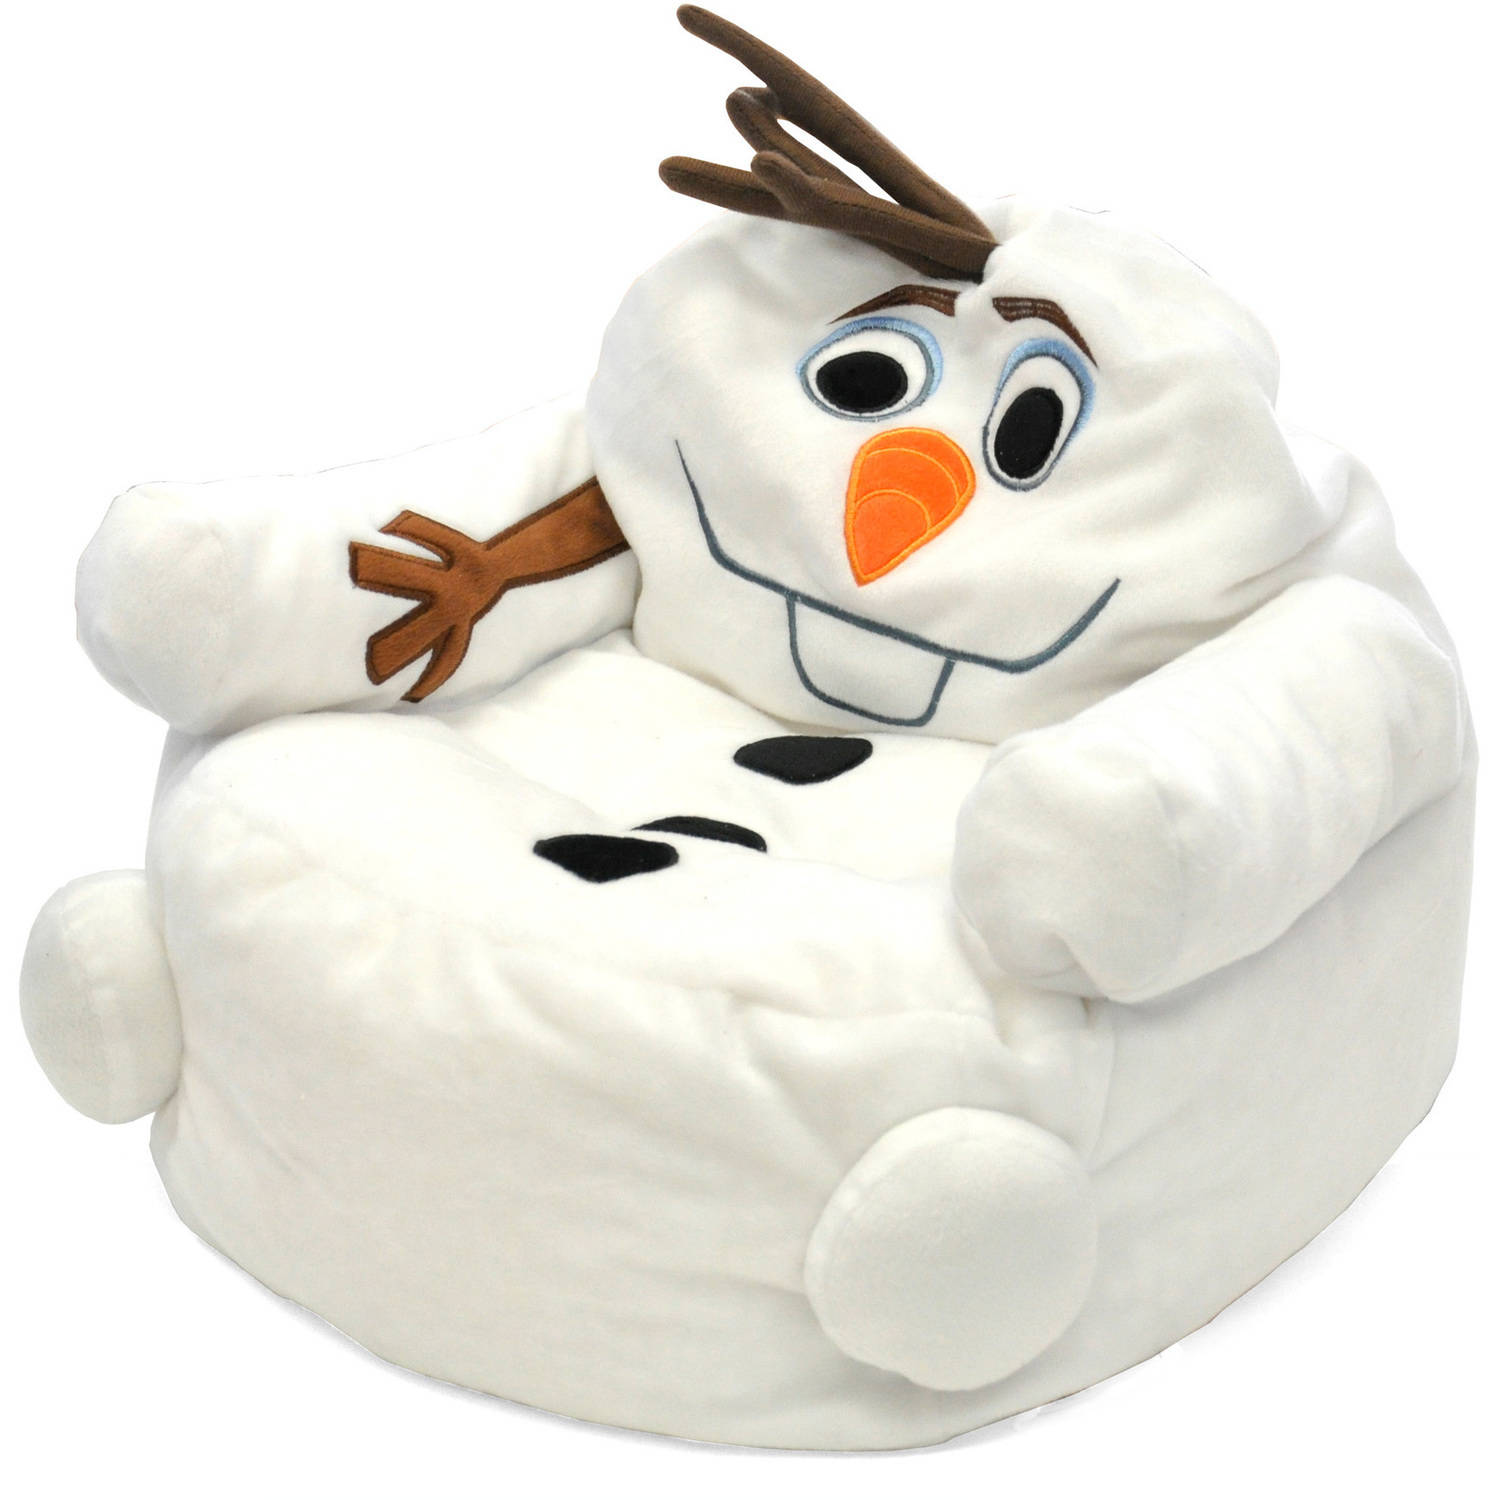 bean bag chair for toddler aeron size c frozen olaf character figural walmart com